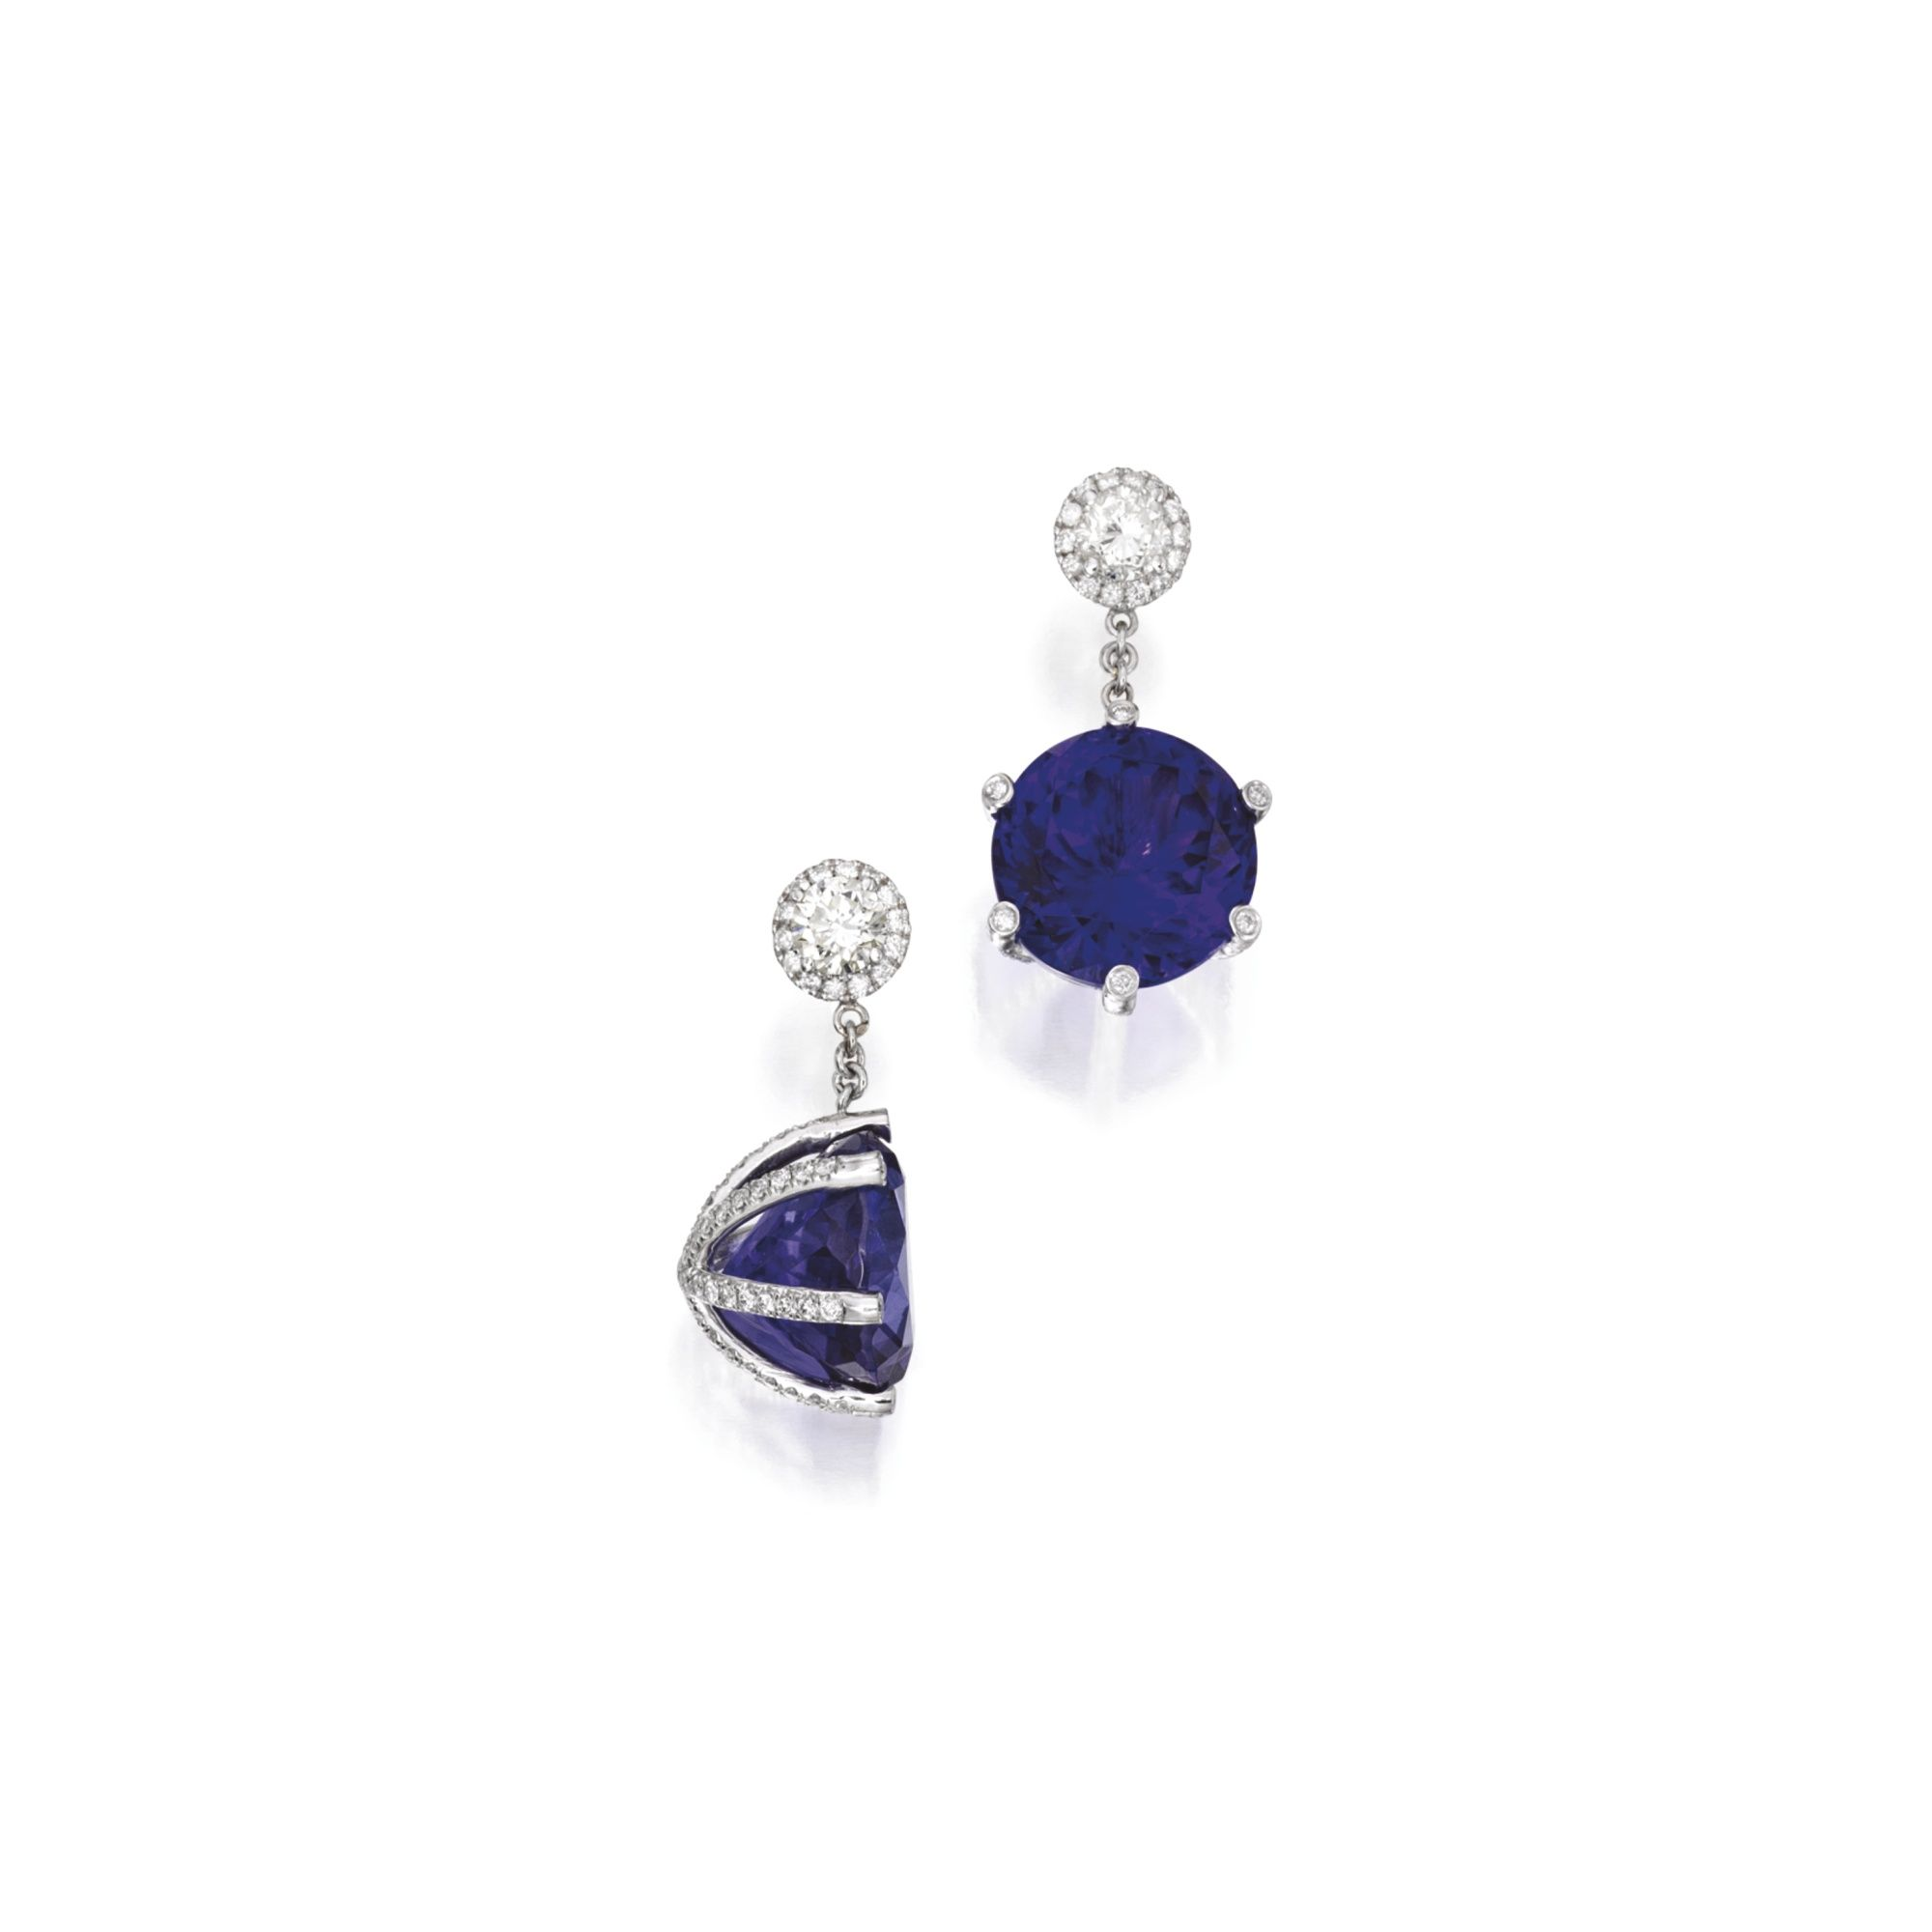 earrings product halo diamond richland stud tanzanite gemstones oval ct